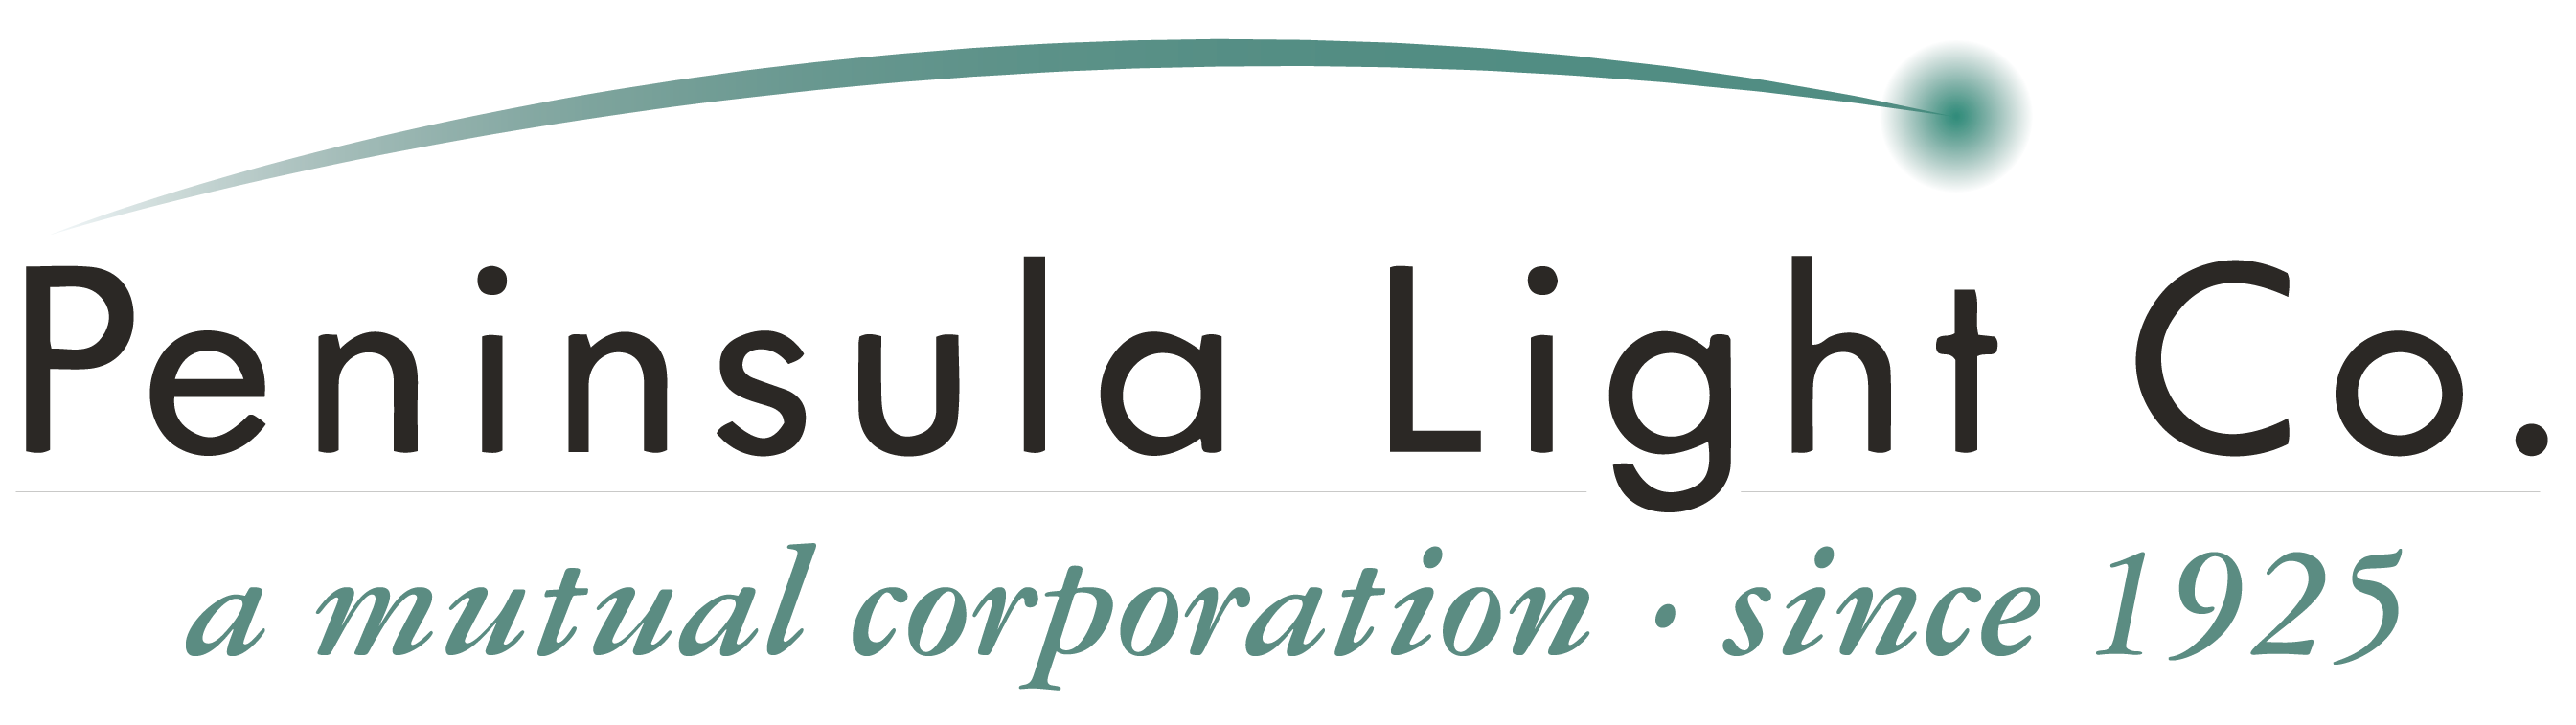 Peninsula Light Company